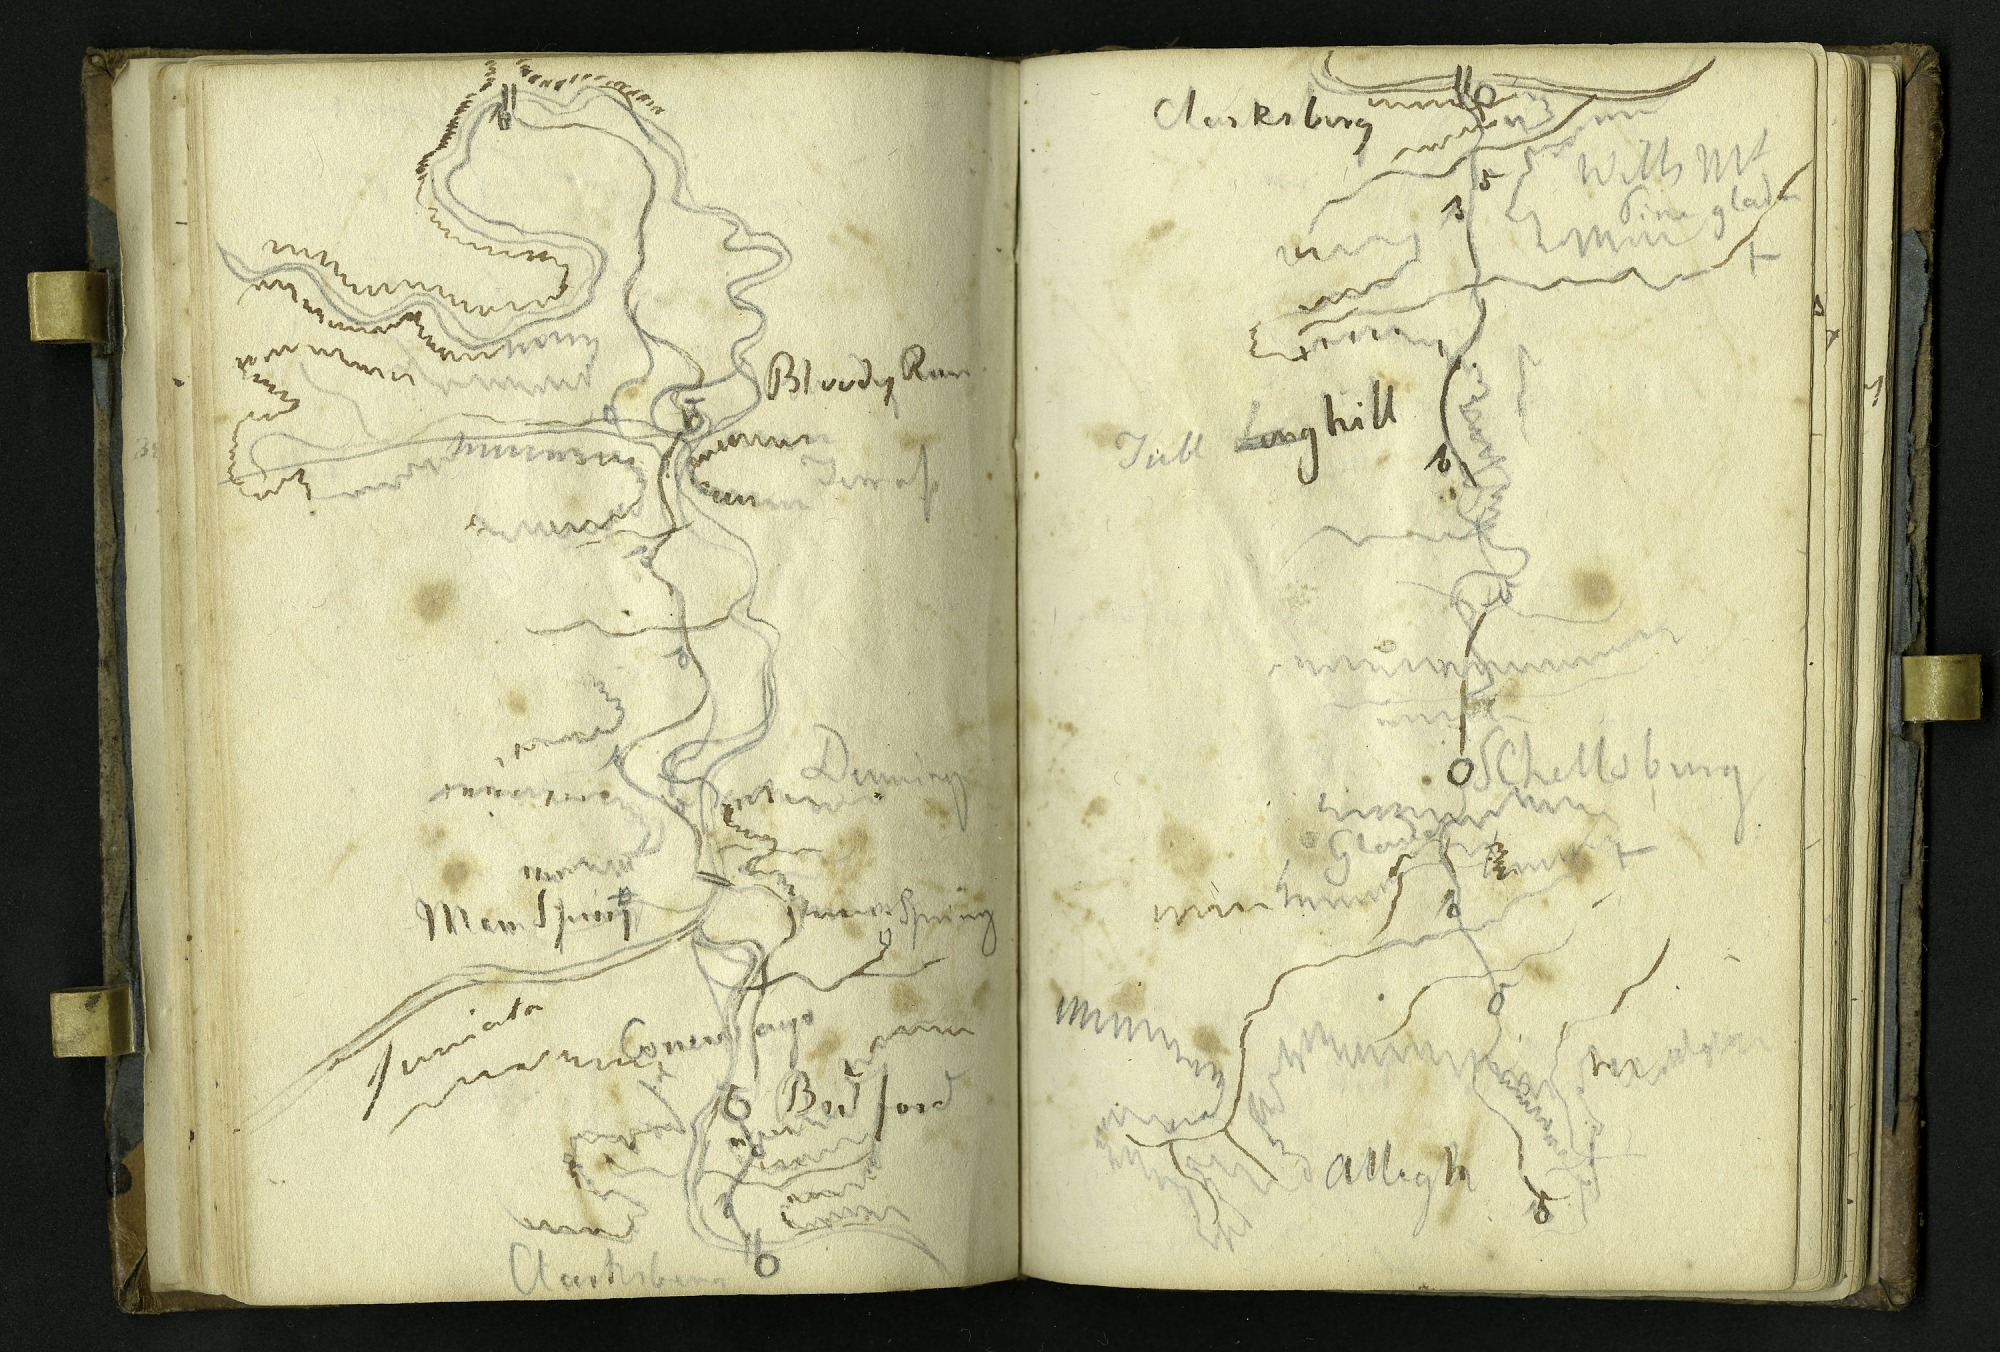 Notebook kept by Rafinesque on a trip from Philadelphia to Kentucky, 1818 [Smithsonian Institution Archives. Record Unit 7250. Negative number SIA2012-6086.]